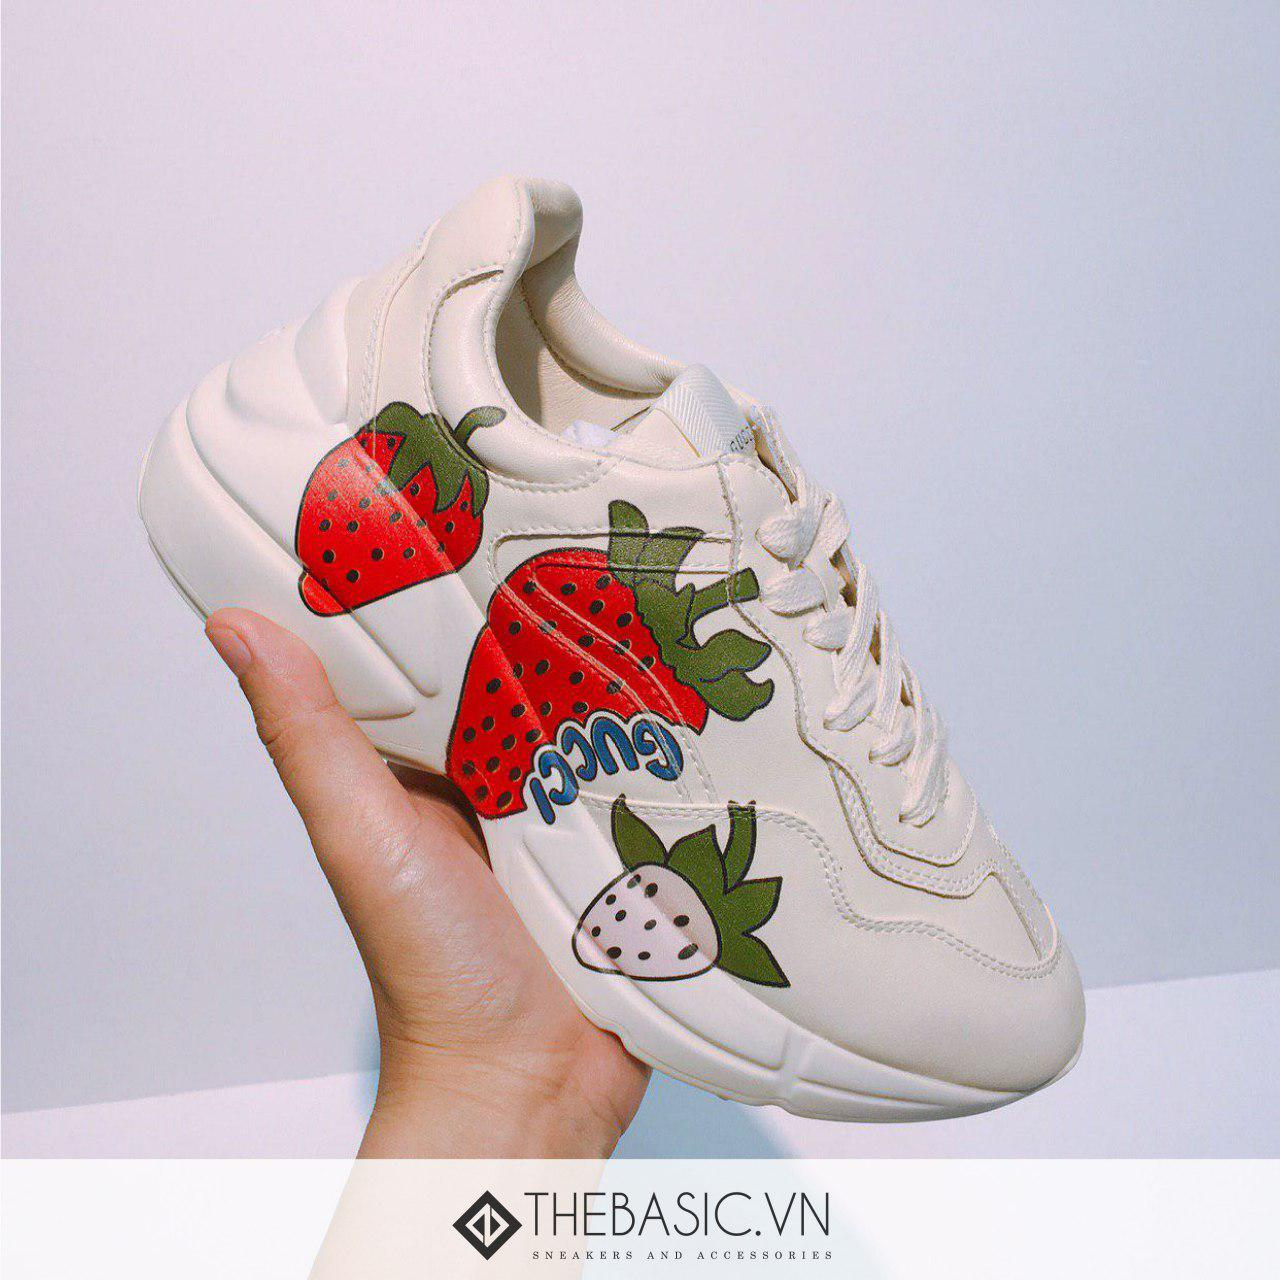 GIÀY GUCCI RHYTON STRAWBERRY OFF-WHITE